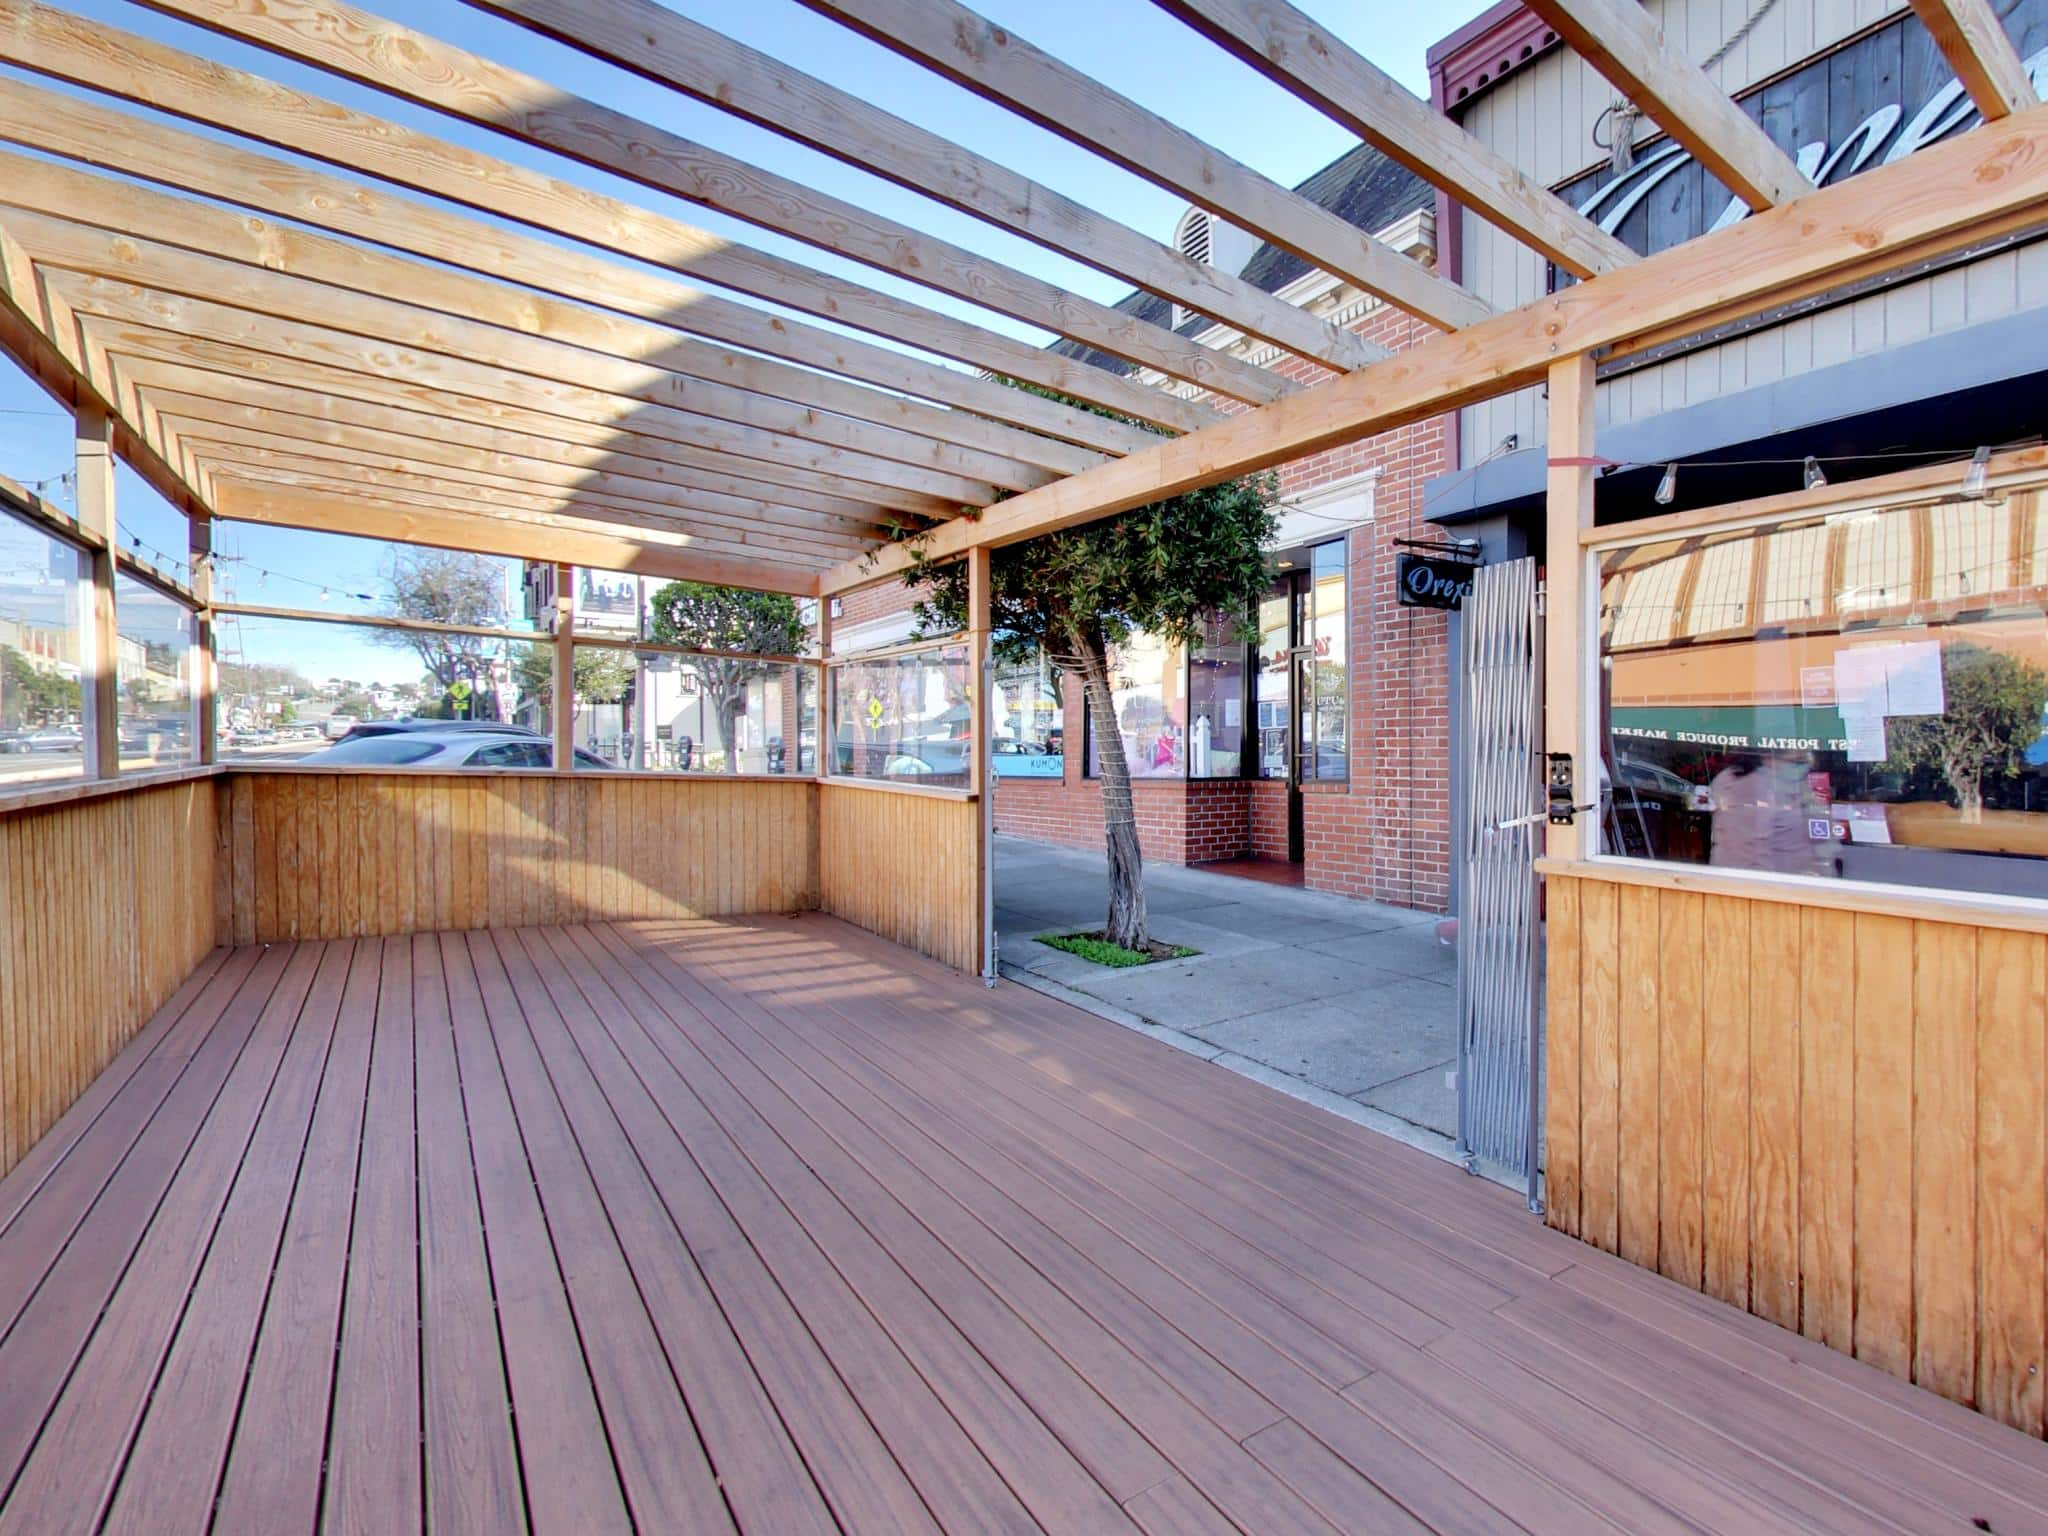 243 West Portal Outdoor Dining